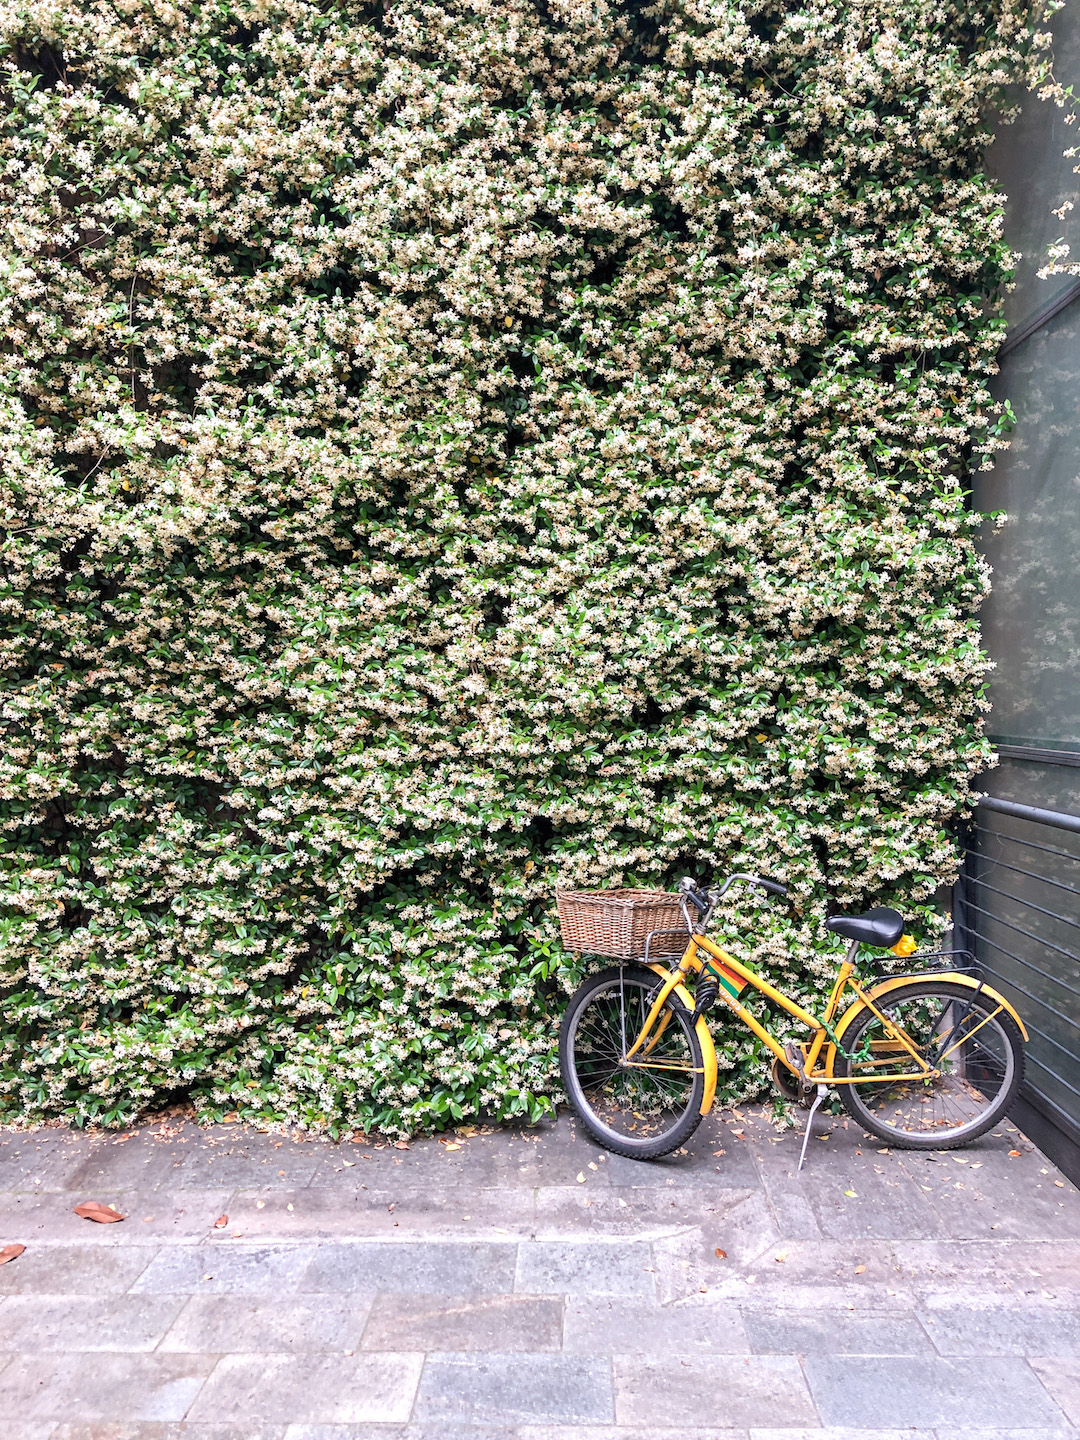 Cute Jasmine Covered Walls in Modena